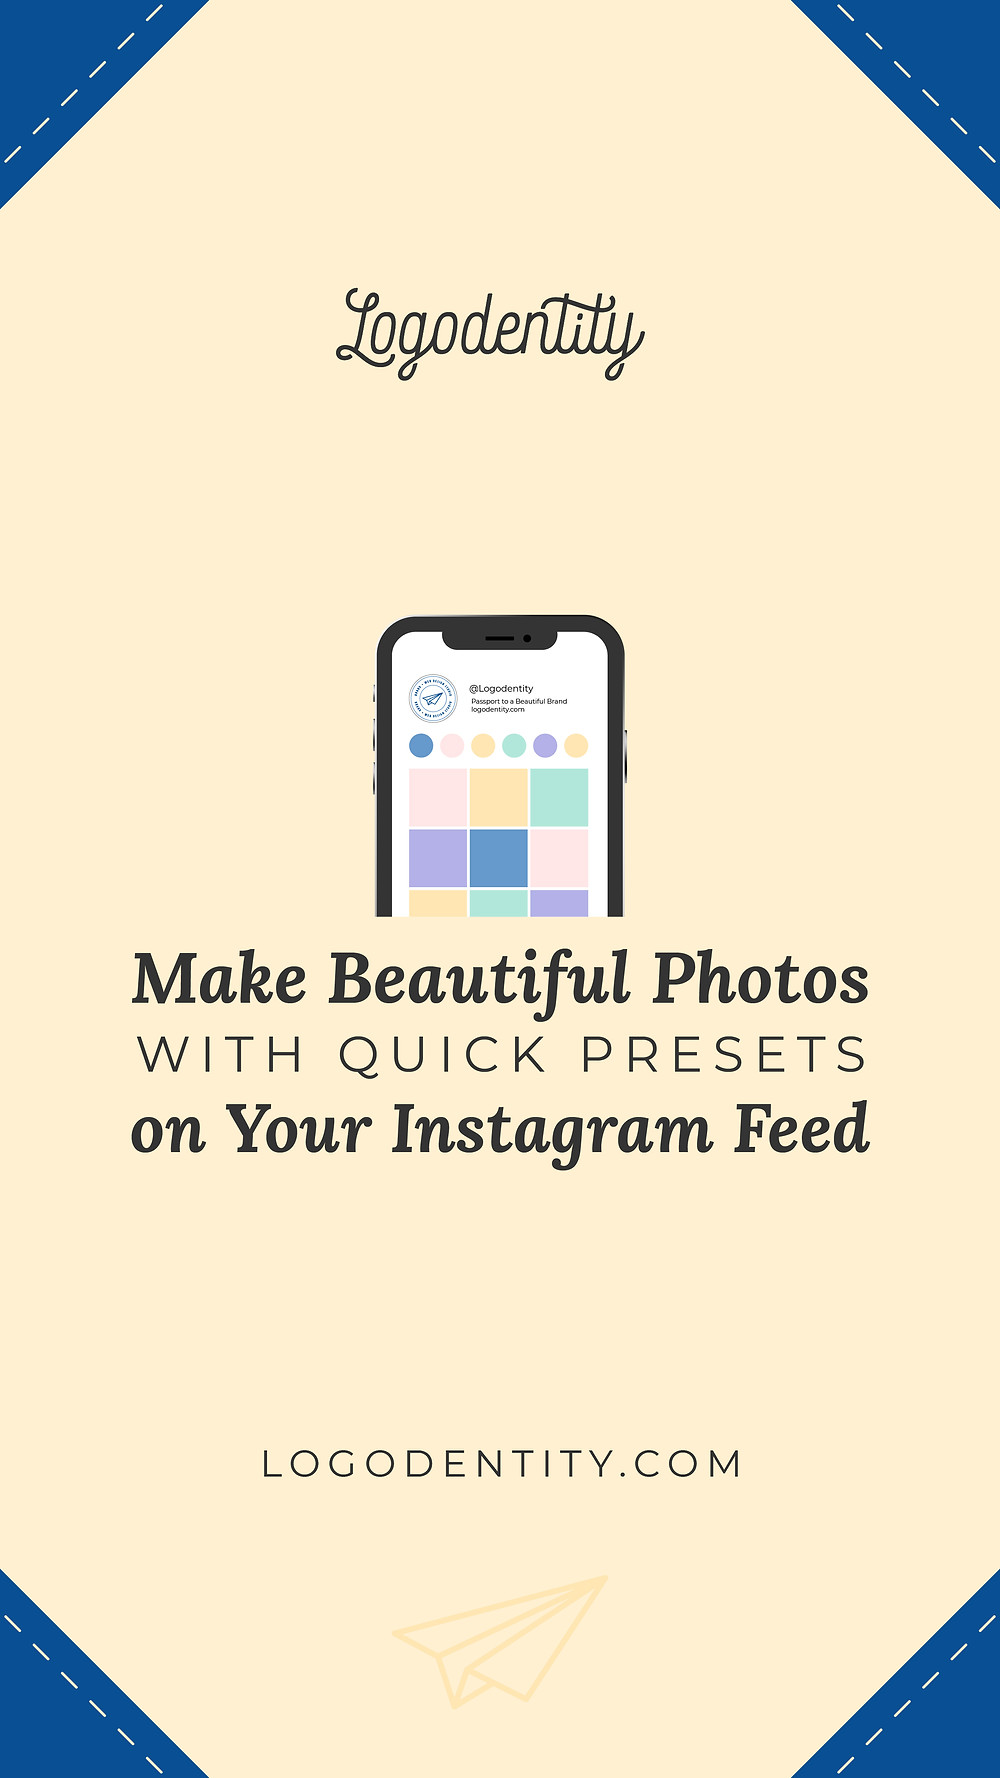 Pin It: Make Beautiful Photos with Quick Presets for Your Instagram Feed